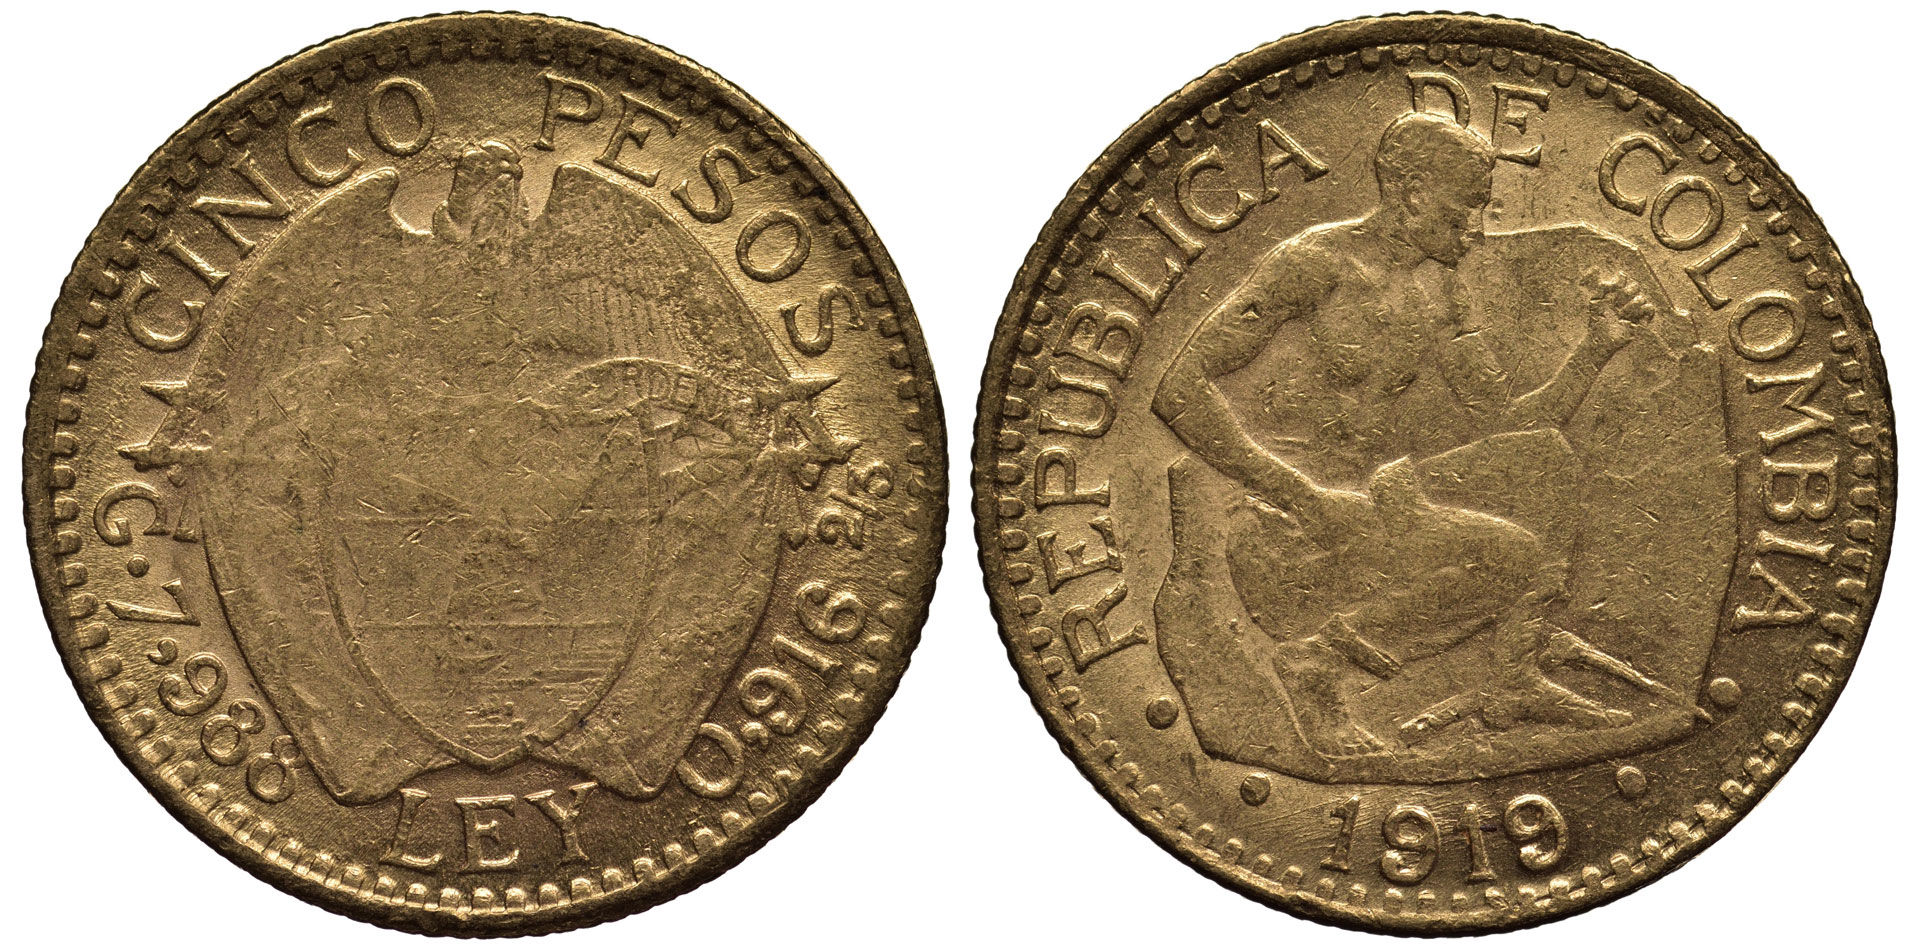 South American gold coins